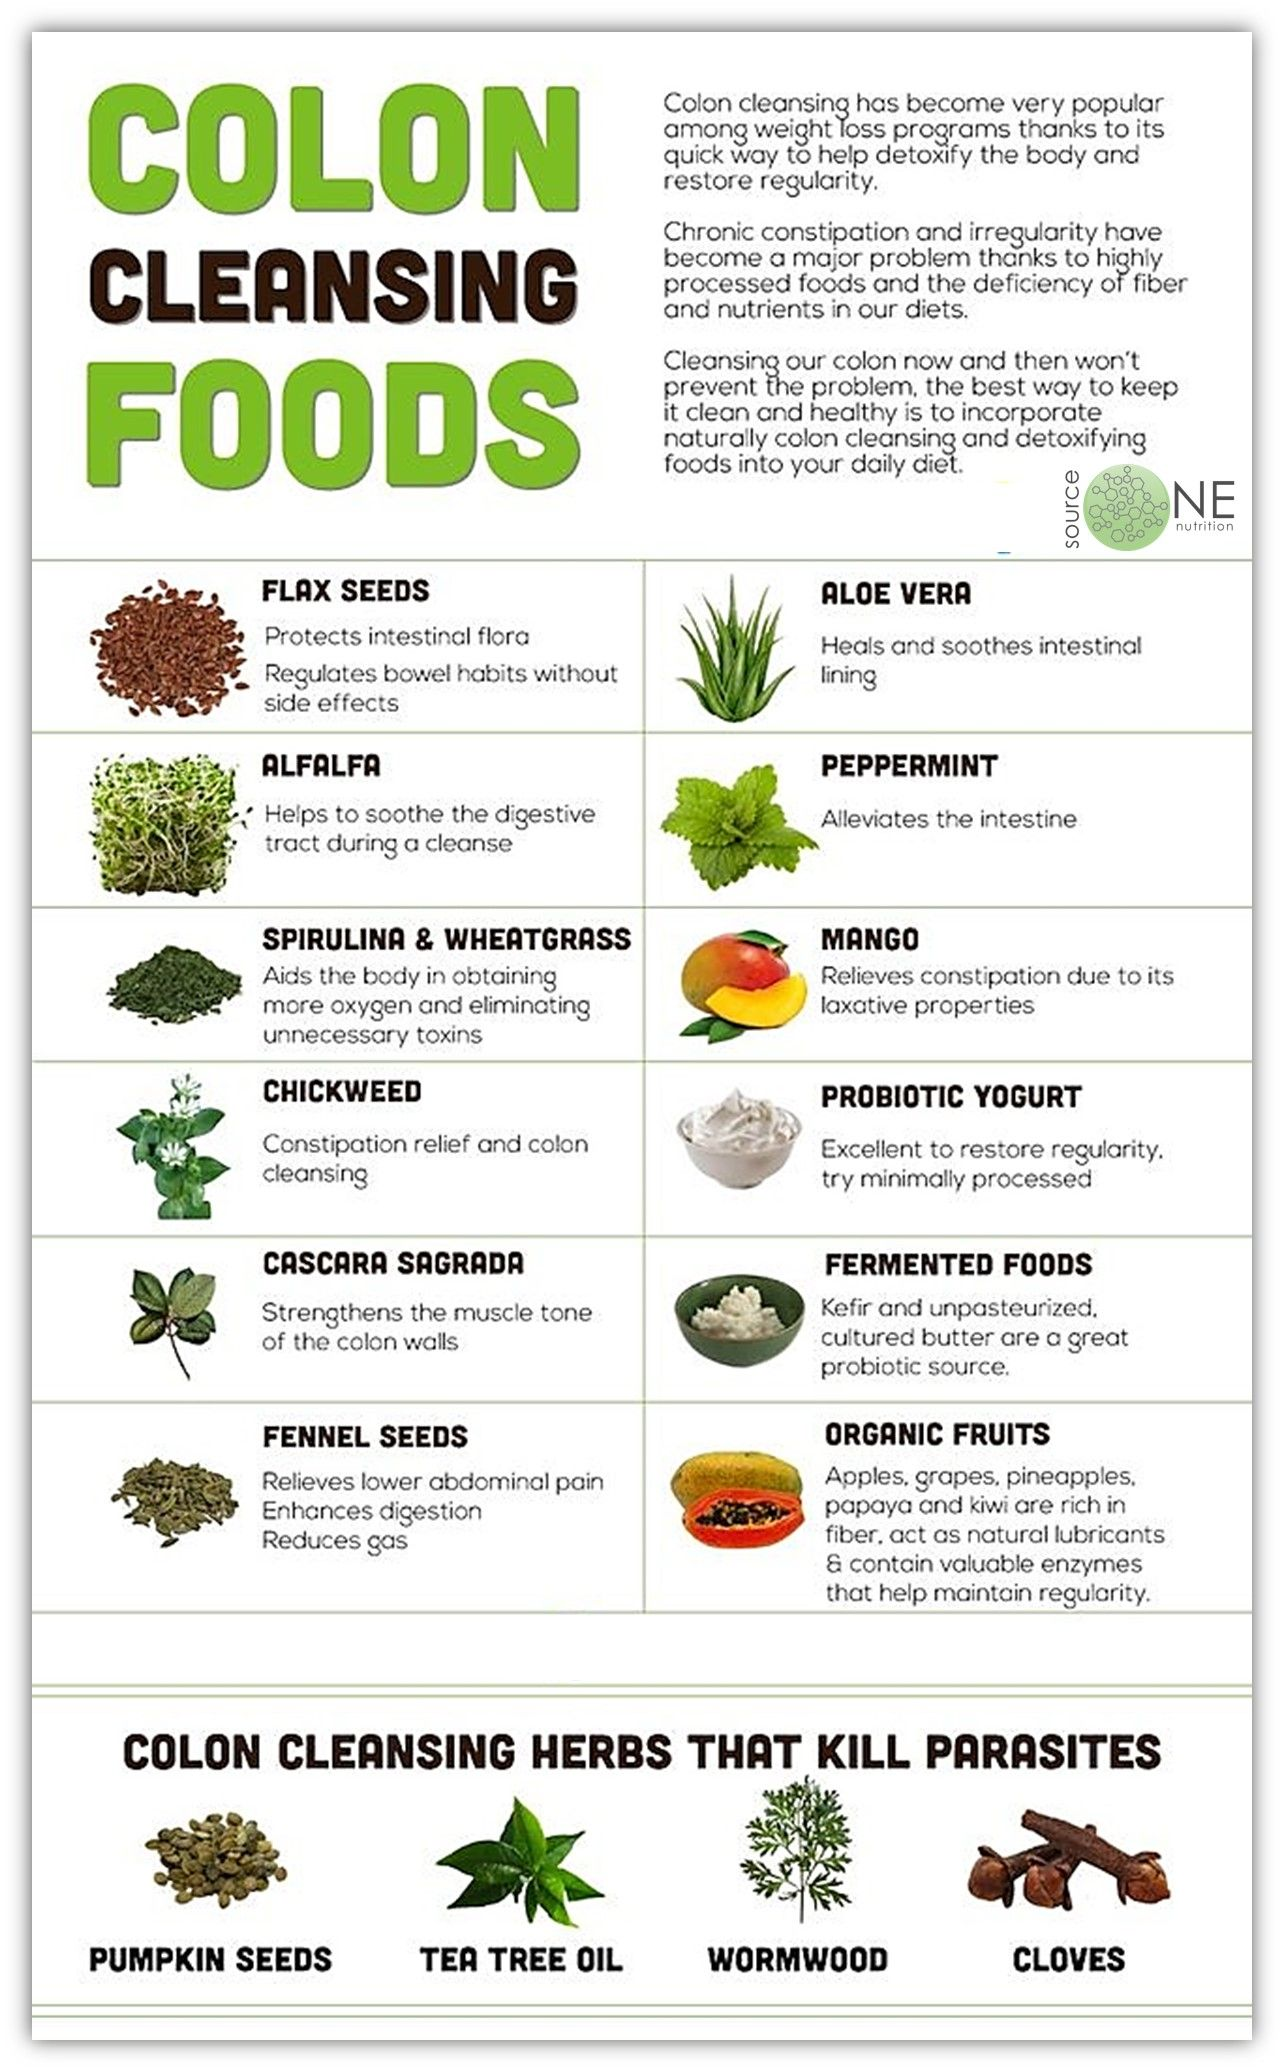 Check Out These Colon Cleansing Foods Visit Sourceonenutrition Com To Learn More About Living A Healthy Li Colon Cleansing Foods Healing Food Cleanse Recipes